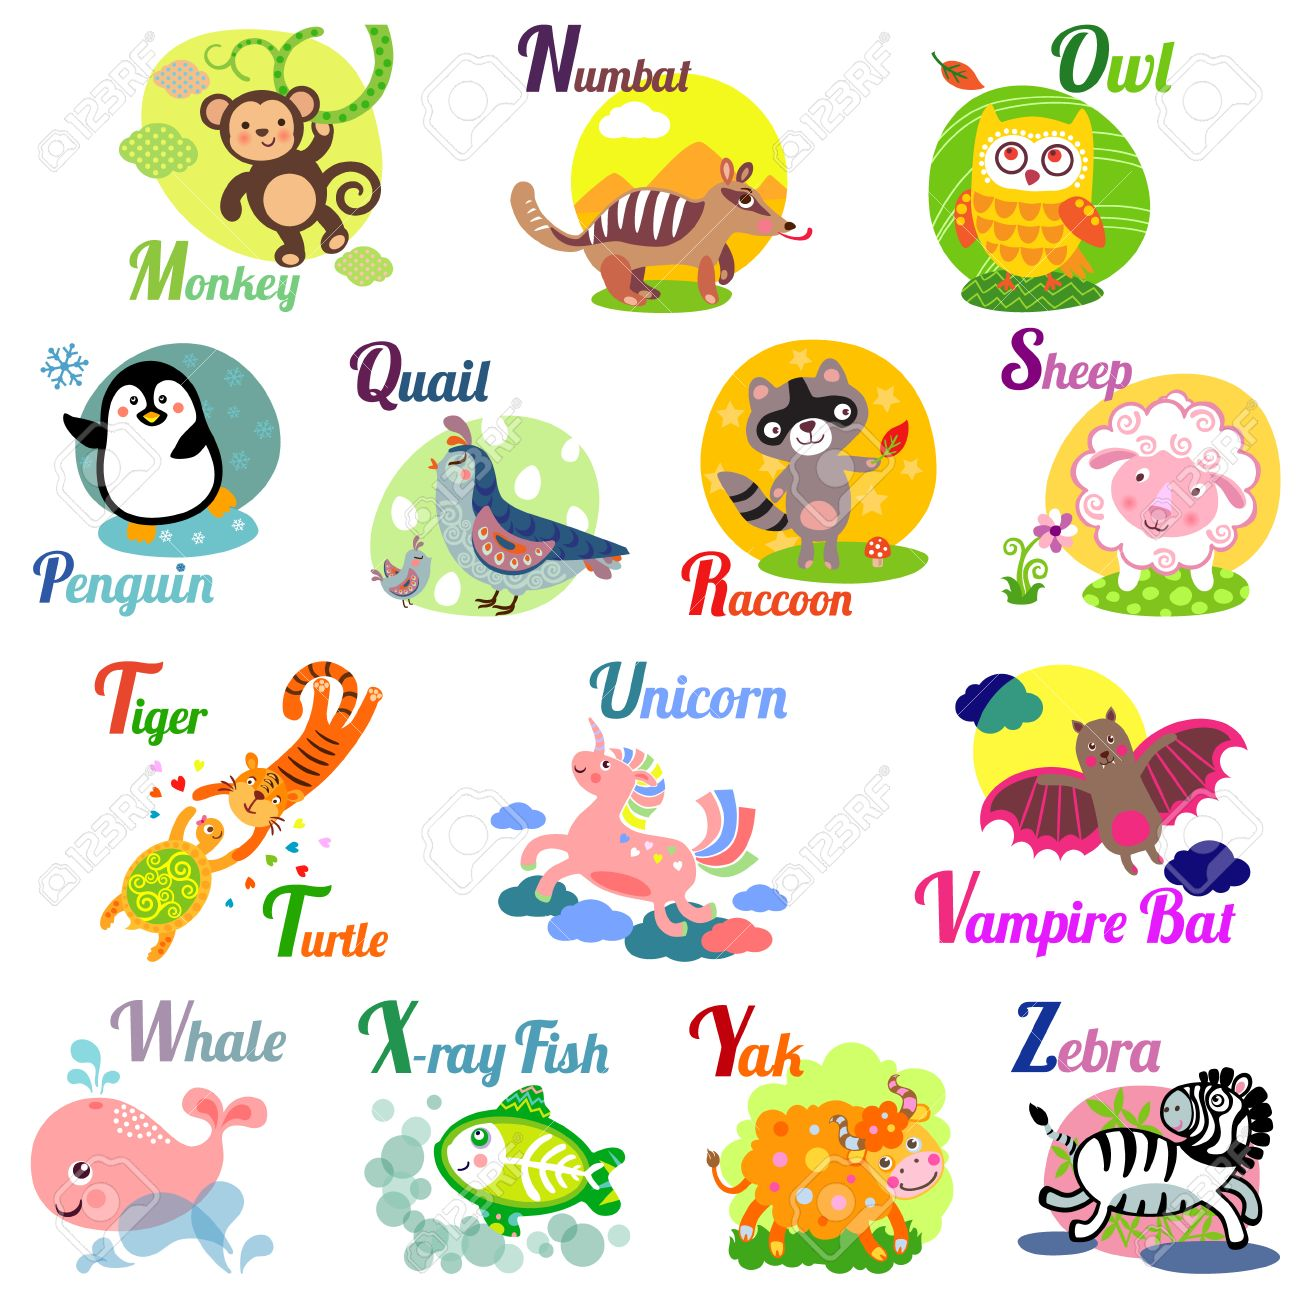 Image of: Narwhal Cute Animal Alphabet For Abc Book Vector Illustration Of Cartoon Animals M 123rfcom Cute Animal Alphabet For Abc Book Vector Illustration Of Cartoon